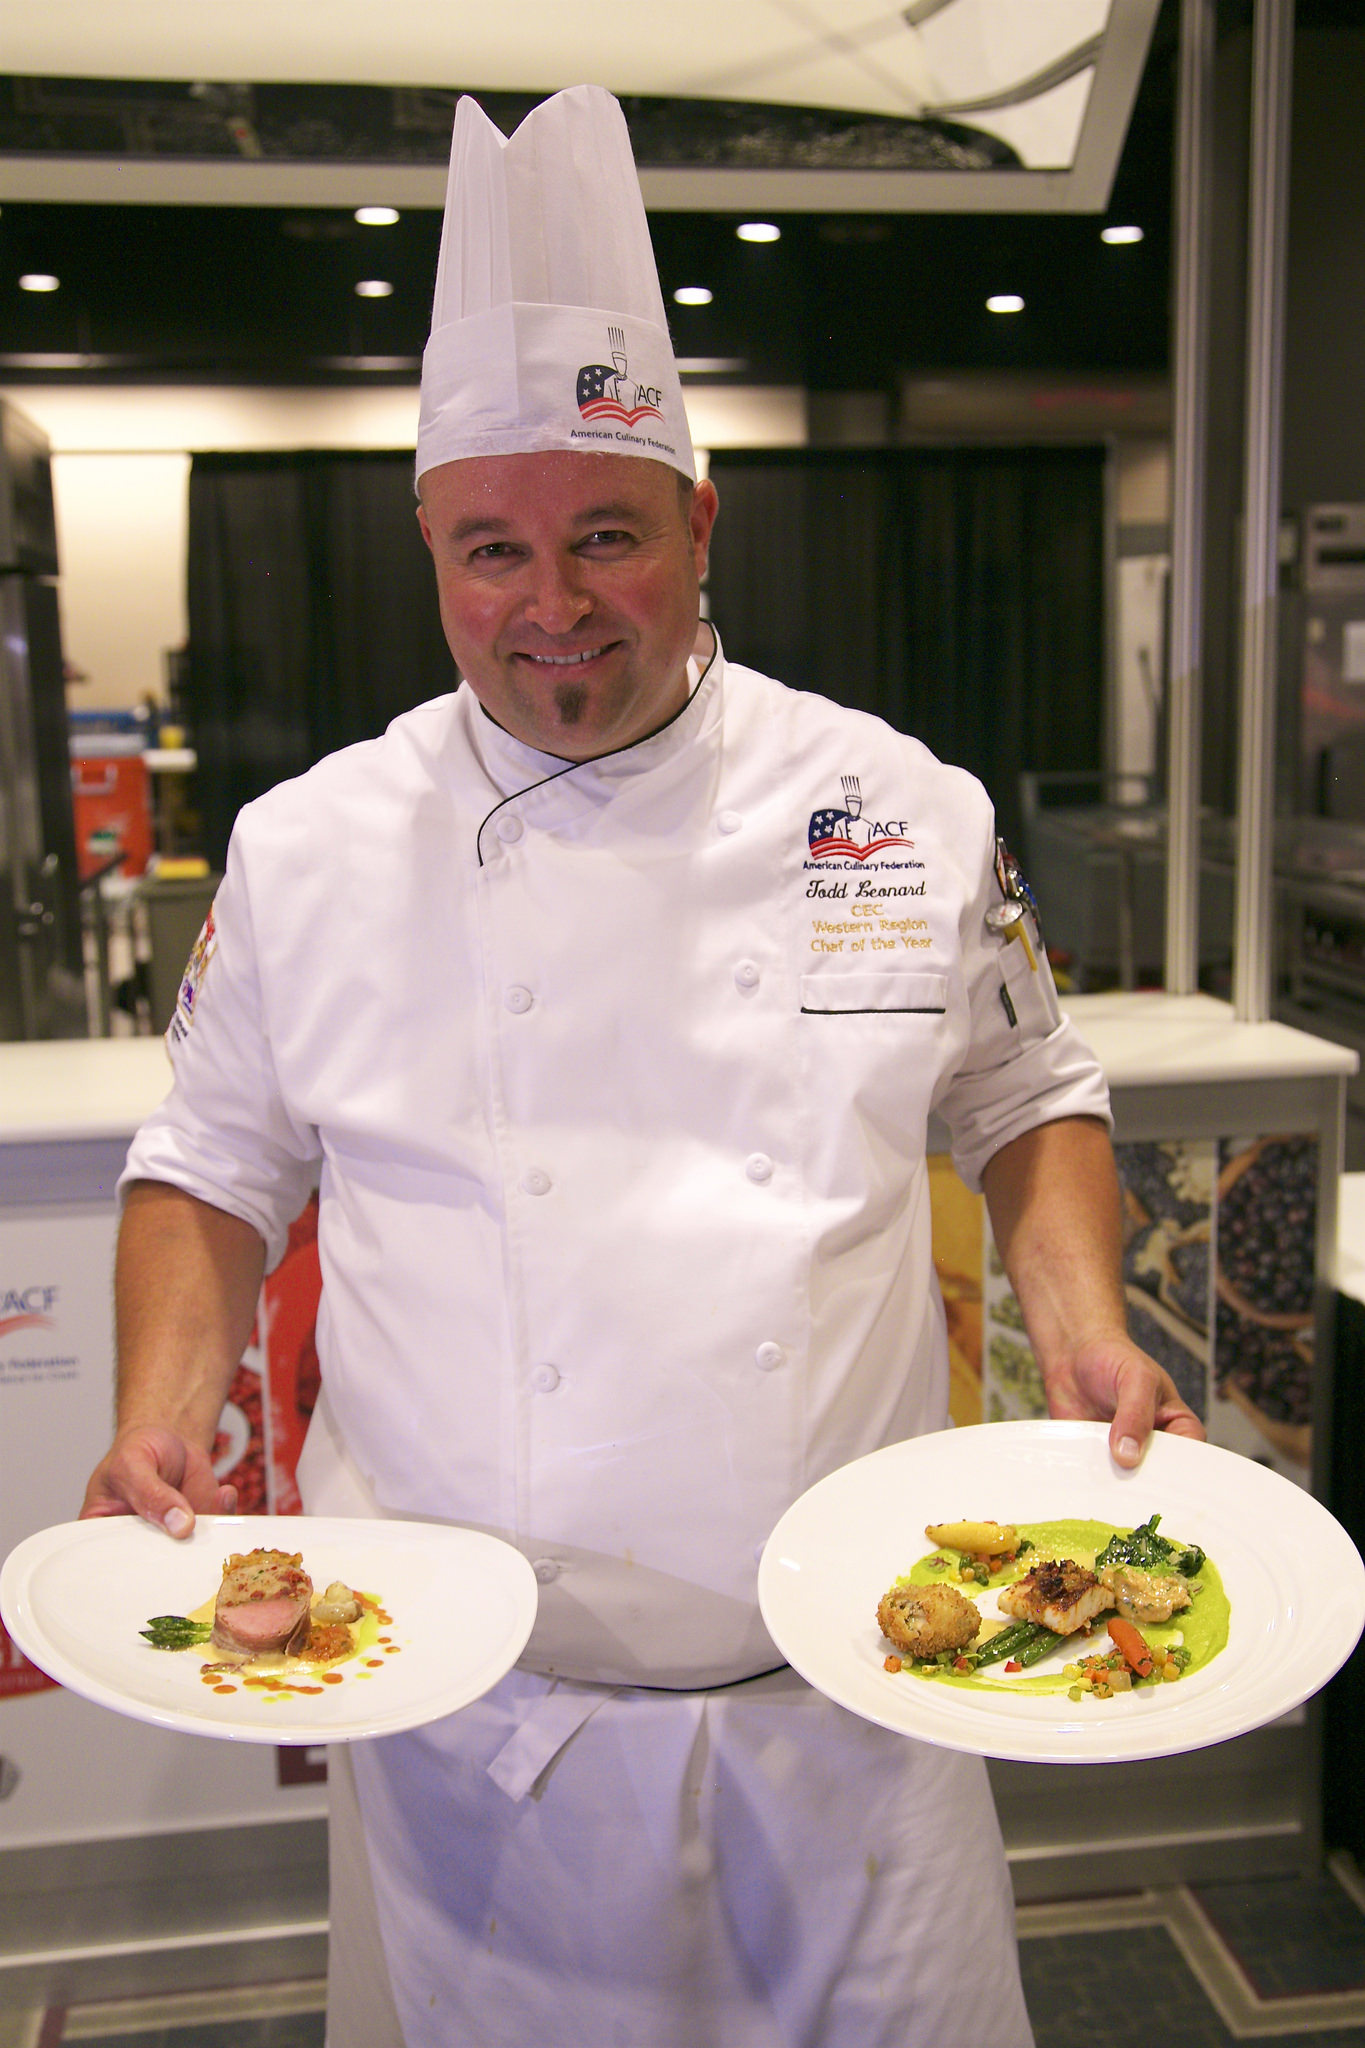 Latter-day Saint Todd Leonard was recently named the 2018 National Chef of the Year at the American Culinary Federation national convention in New Orleans.